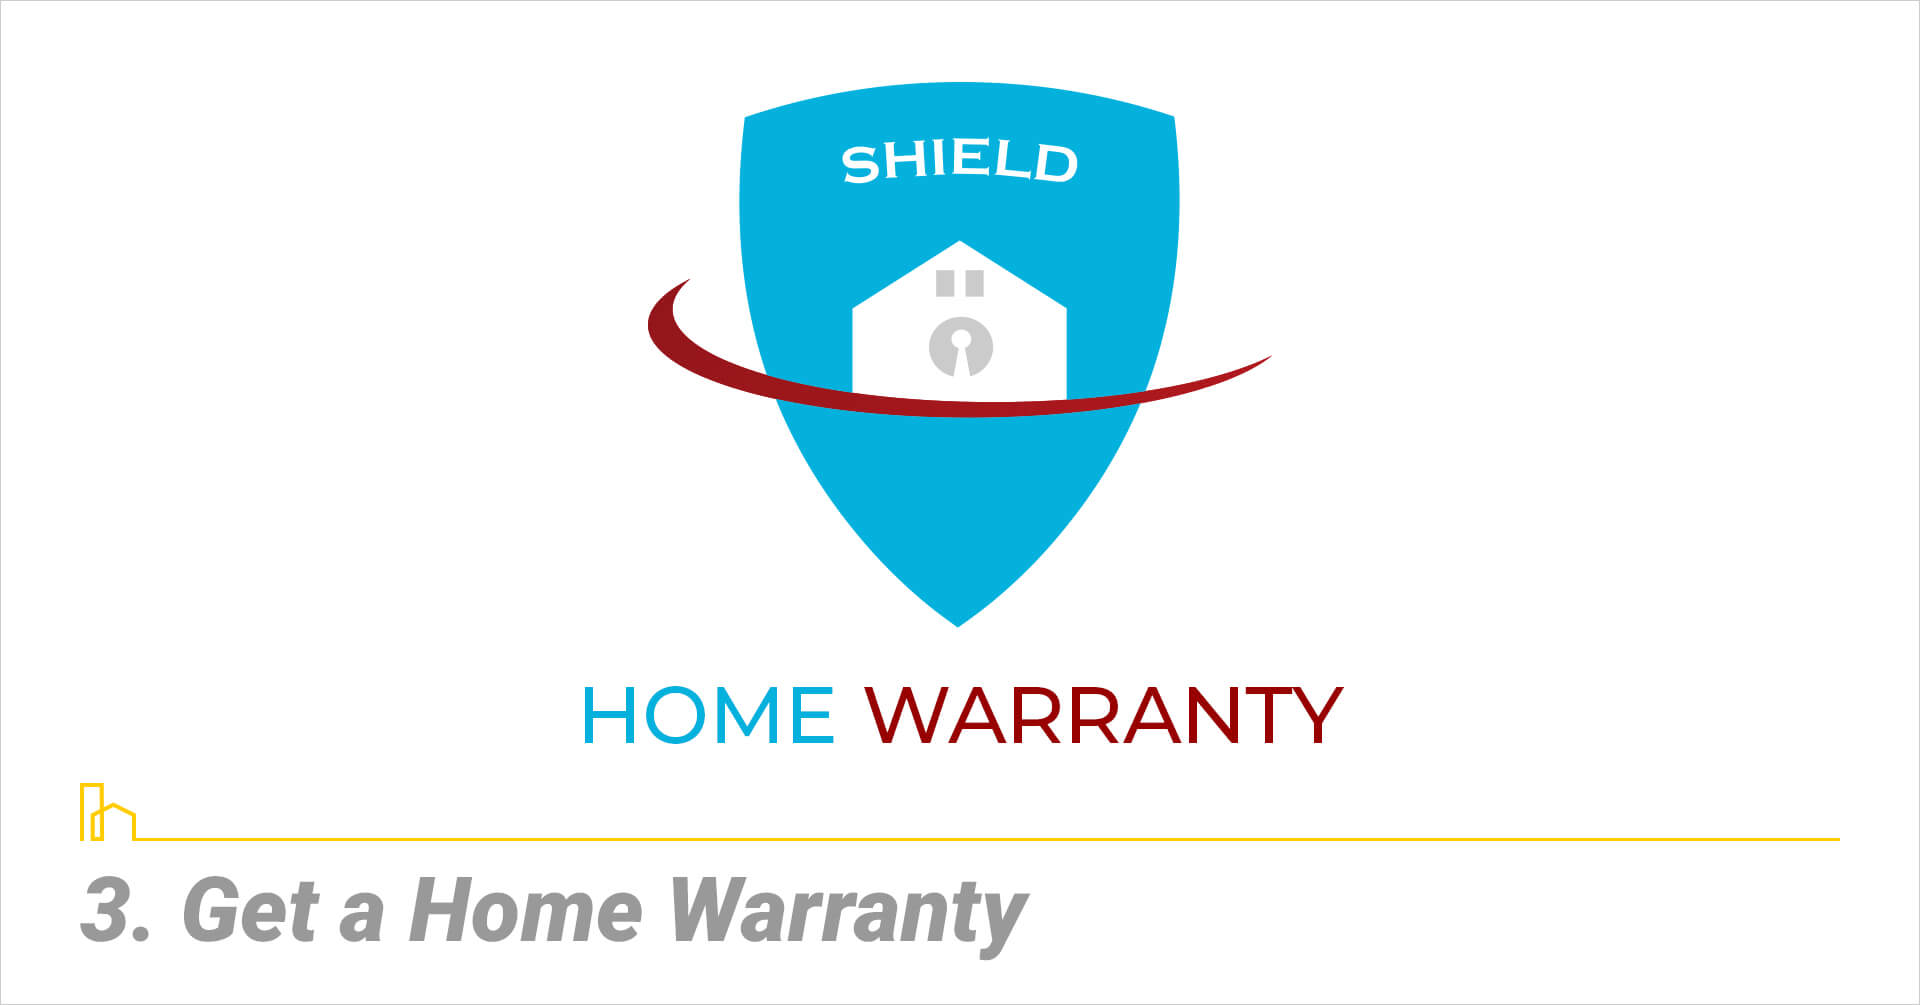 Get a Home Warranty, get your home protected